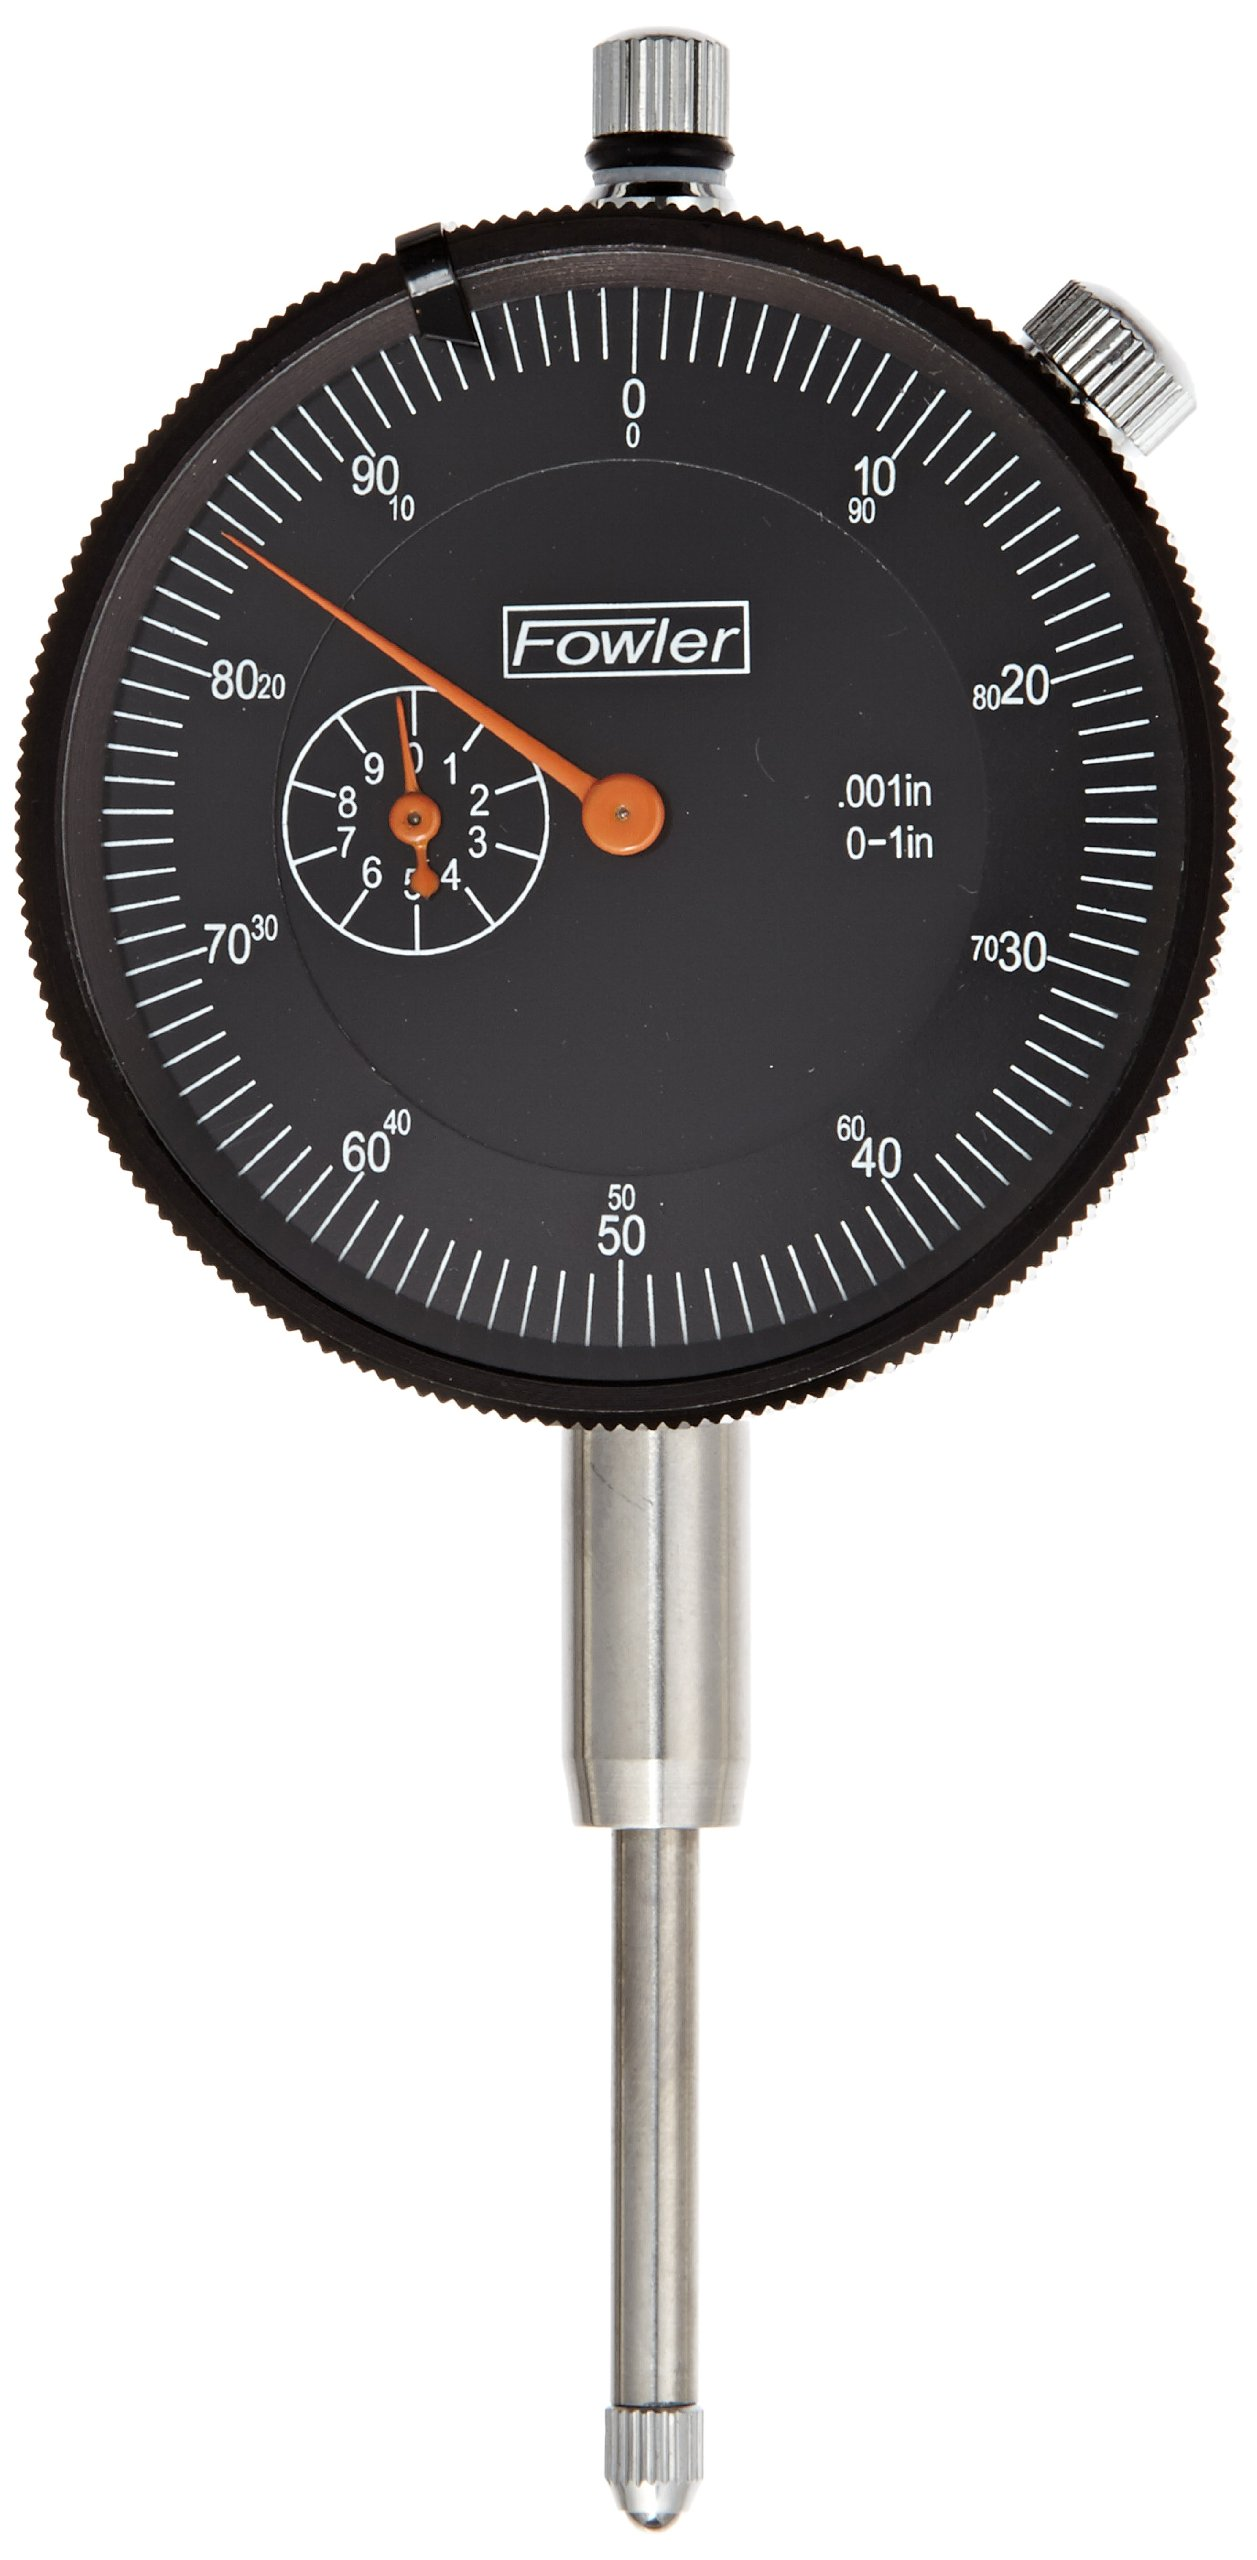 Fowler 52-520-109 AGD Dial Indicator, Black Face, 1'' Travel, 2.25'' Diameter